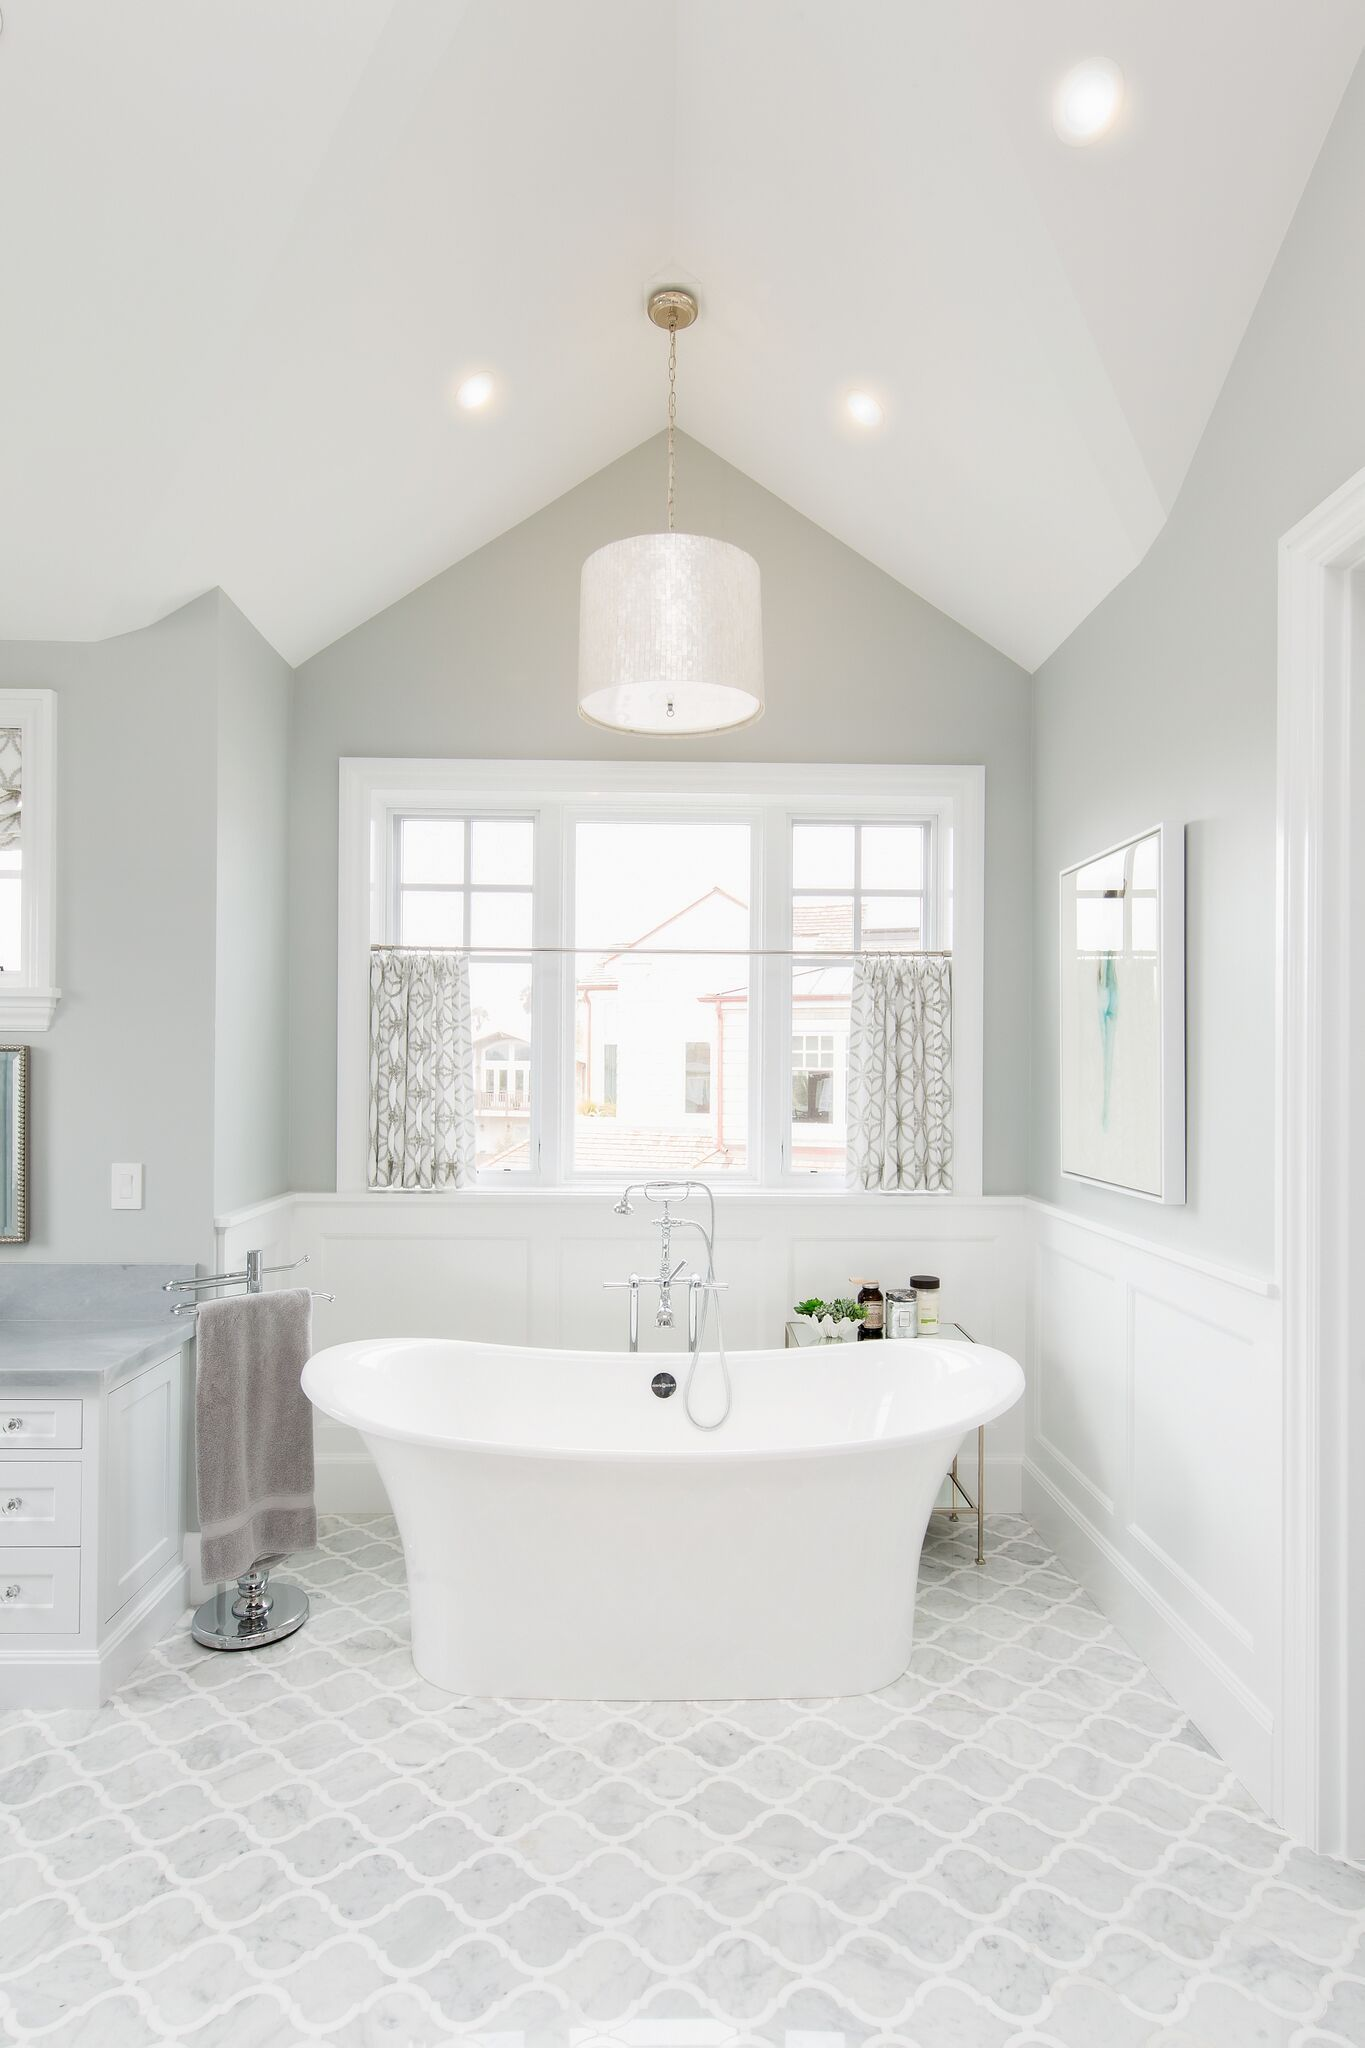 The Master Bathroom Features A Clic Grey And White Color Scheme